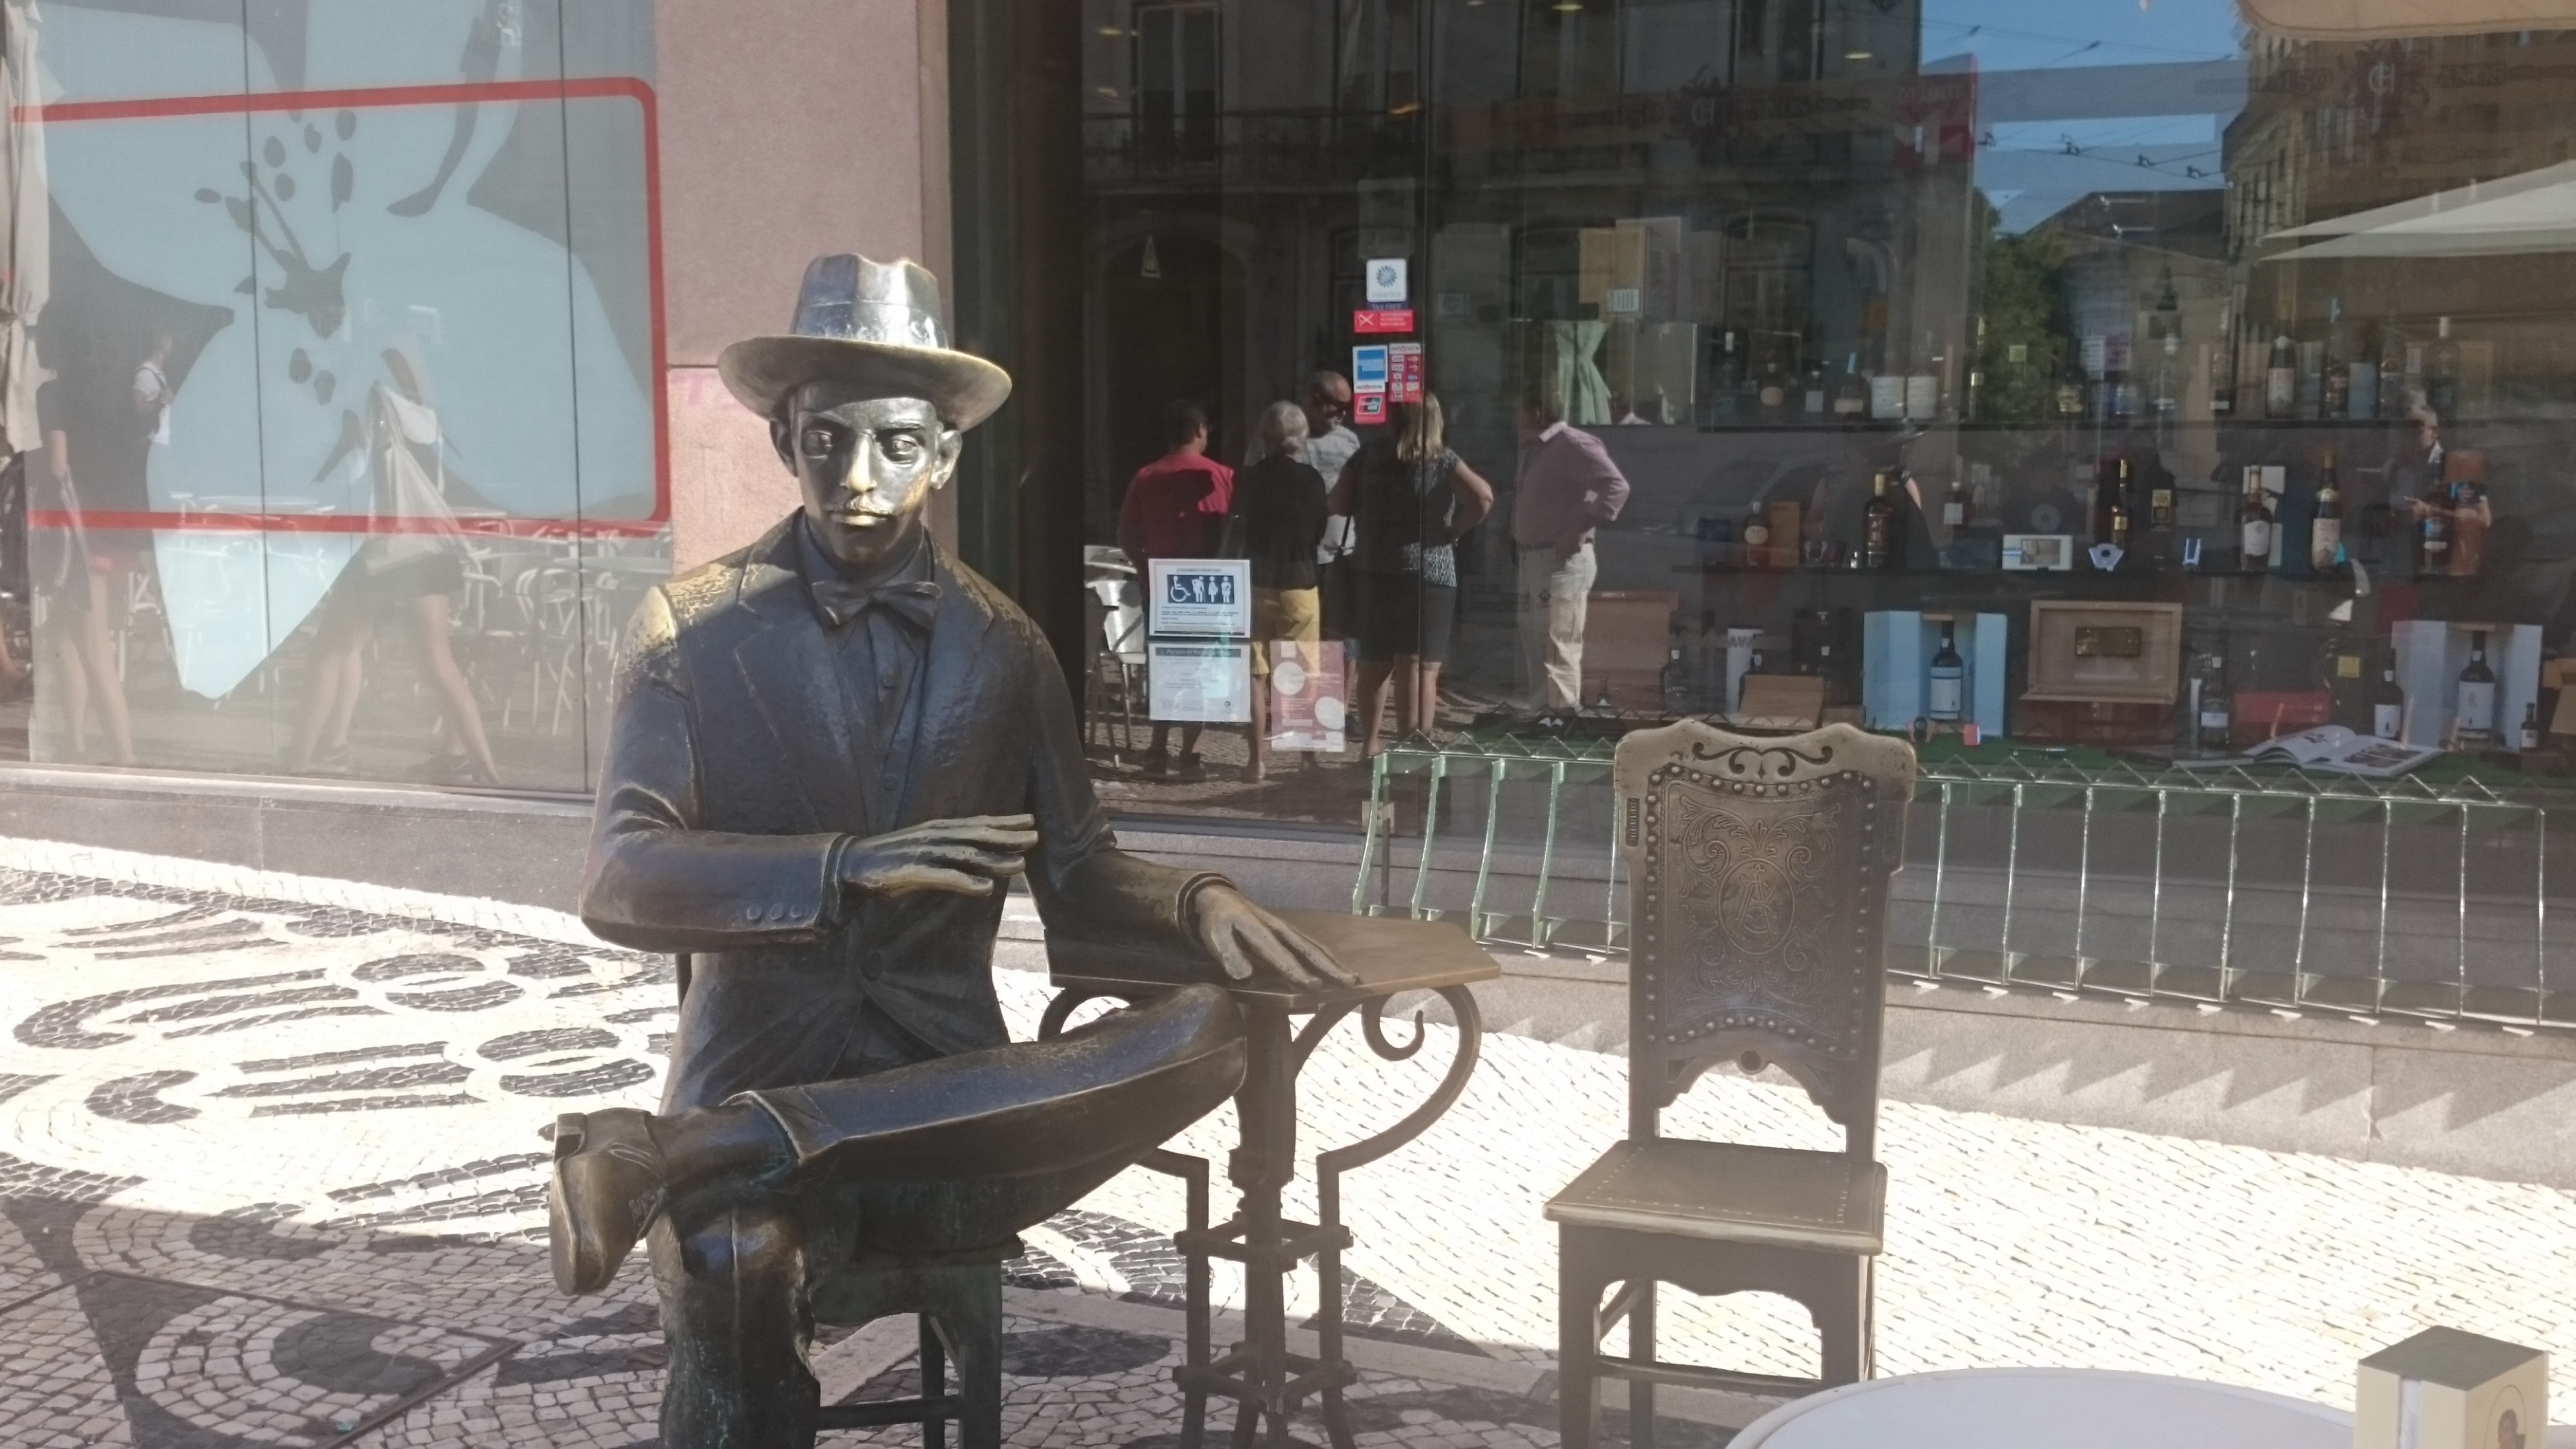 Another Of His Favorite Caf�s, A Brasileira Has His Statue On Their  Terrasse You Can Sit Near Pessoa And Take A Picture